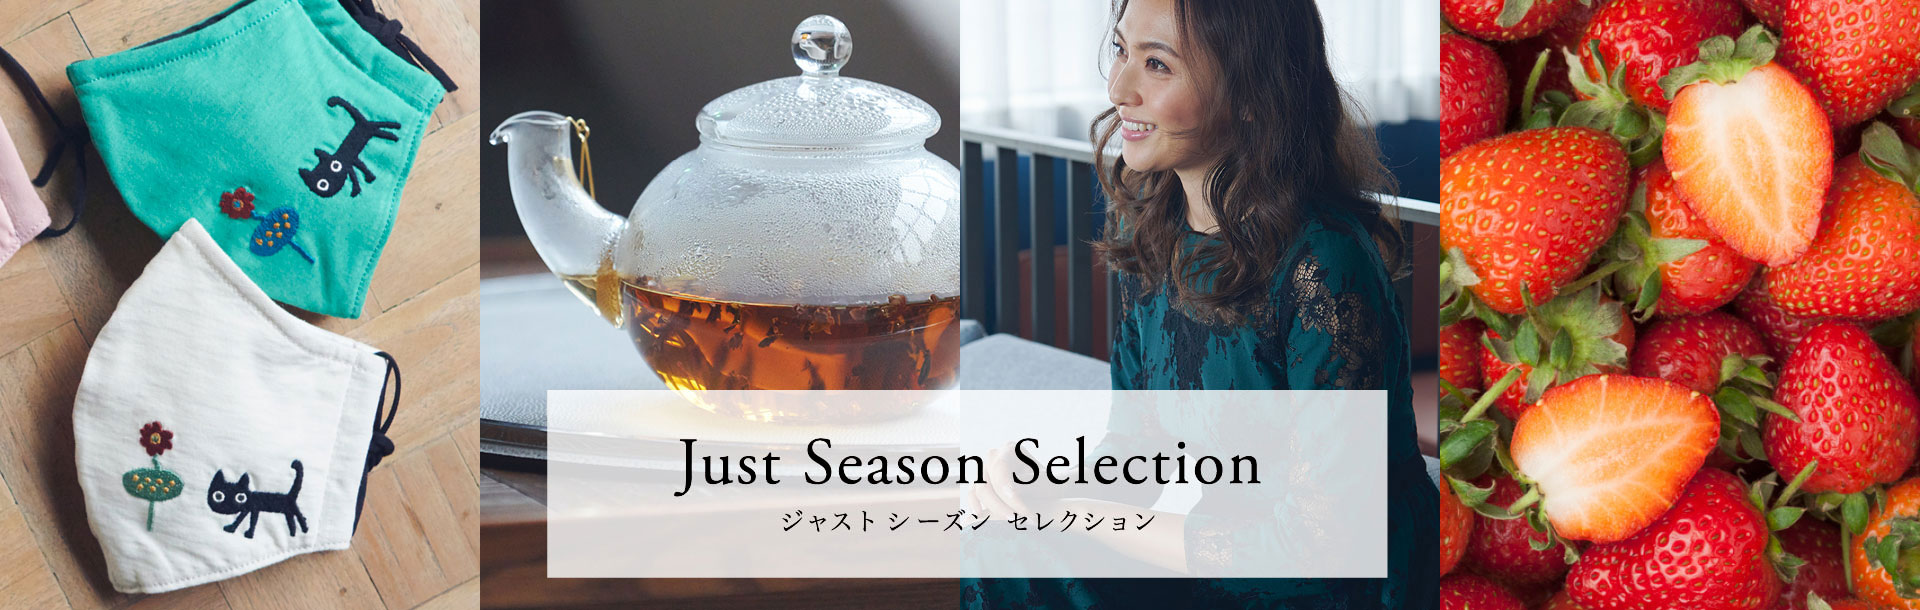 Just Season Selection